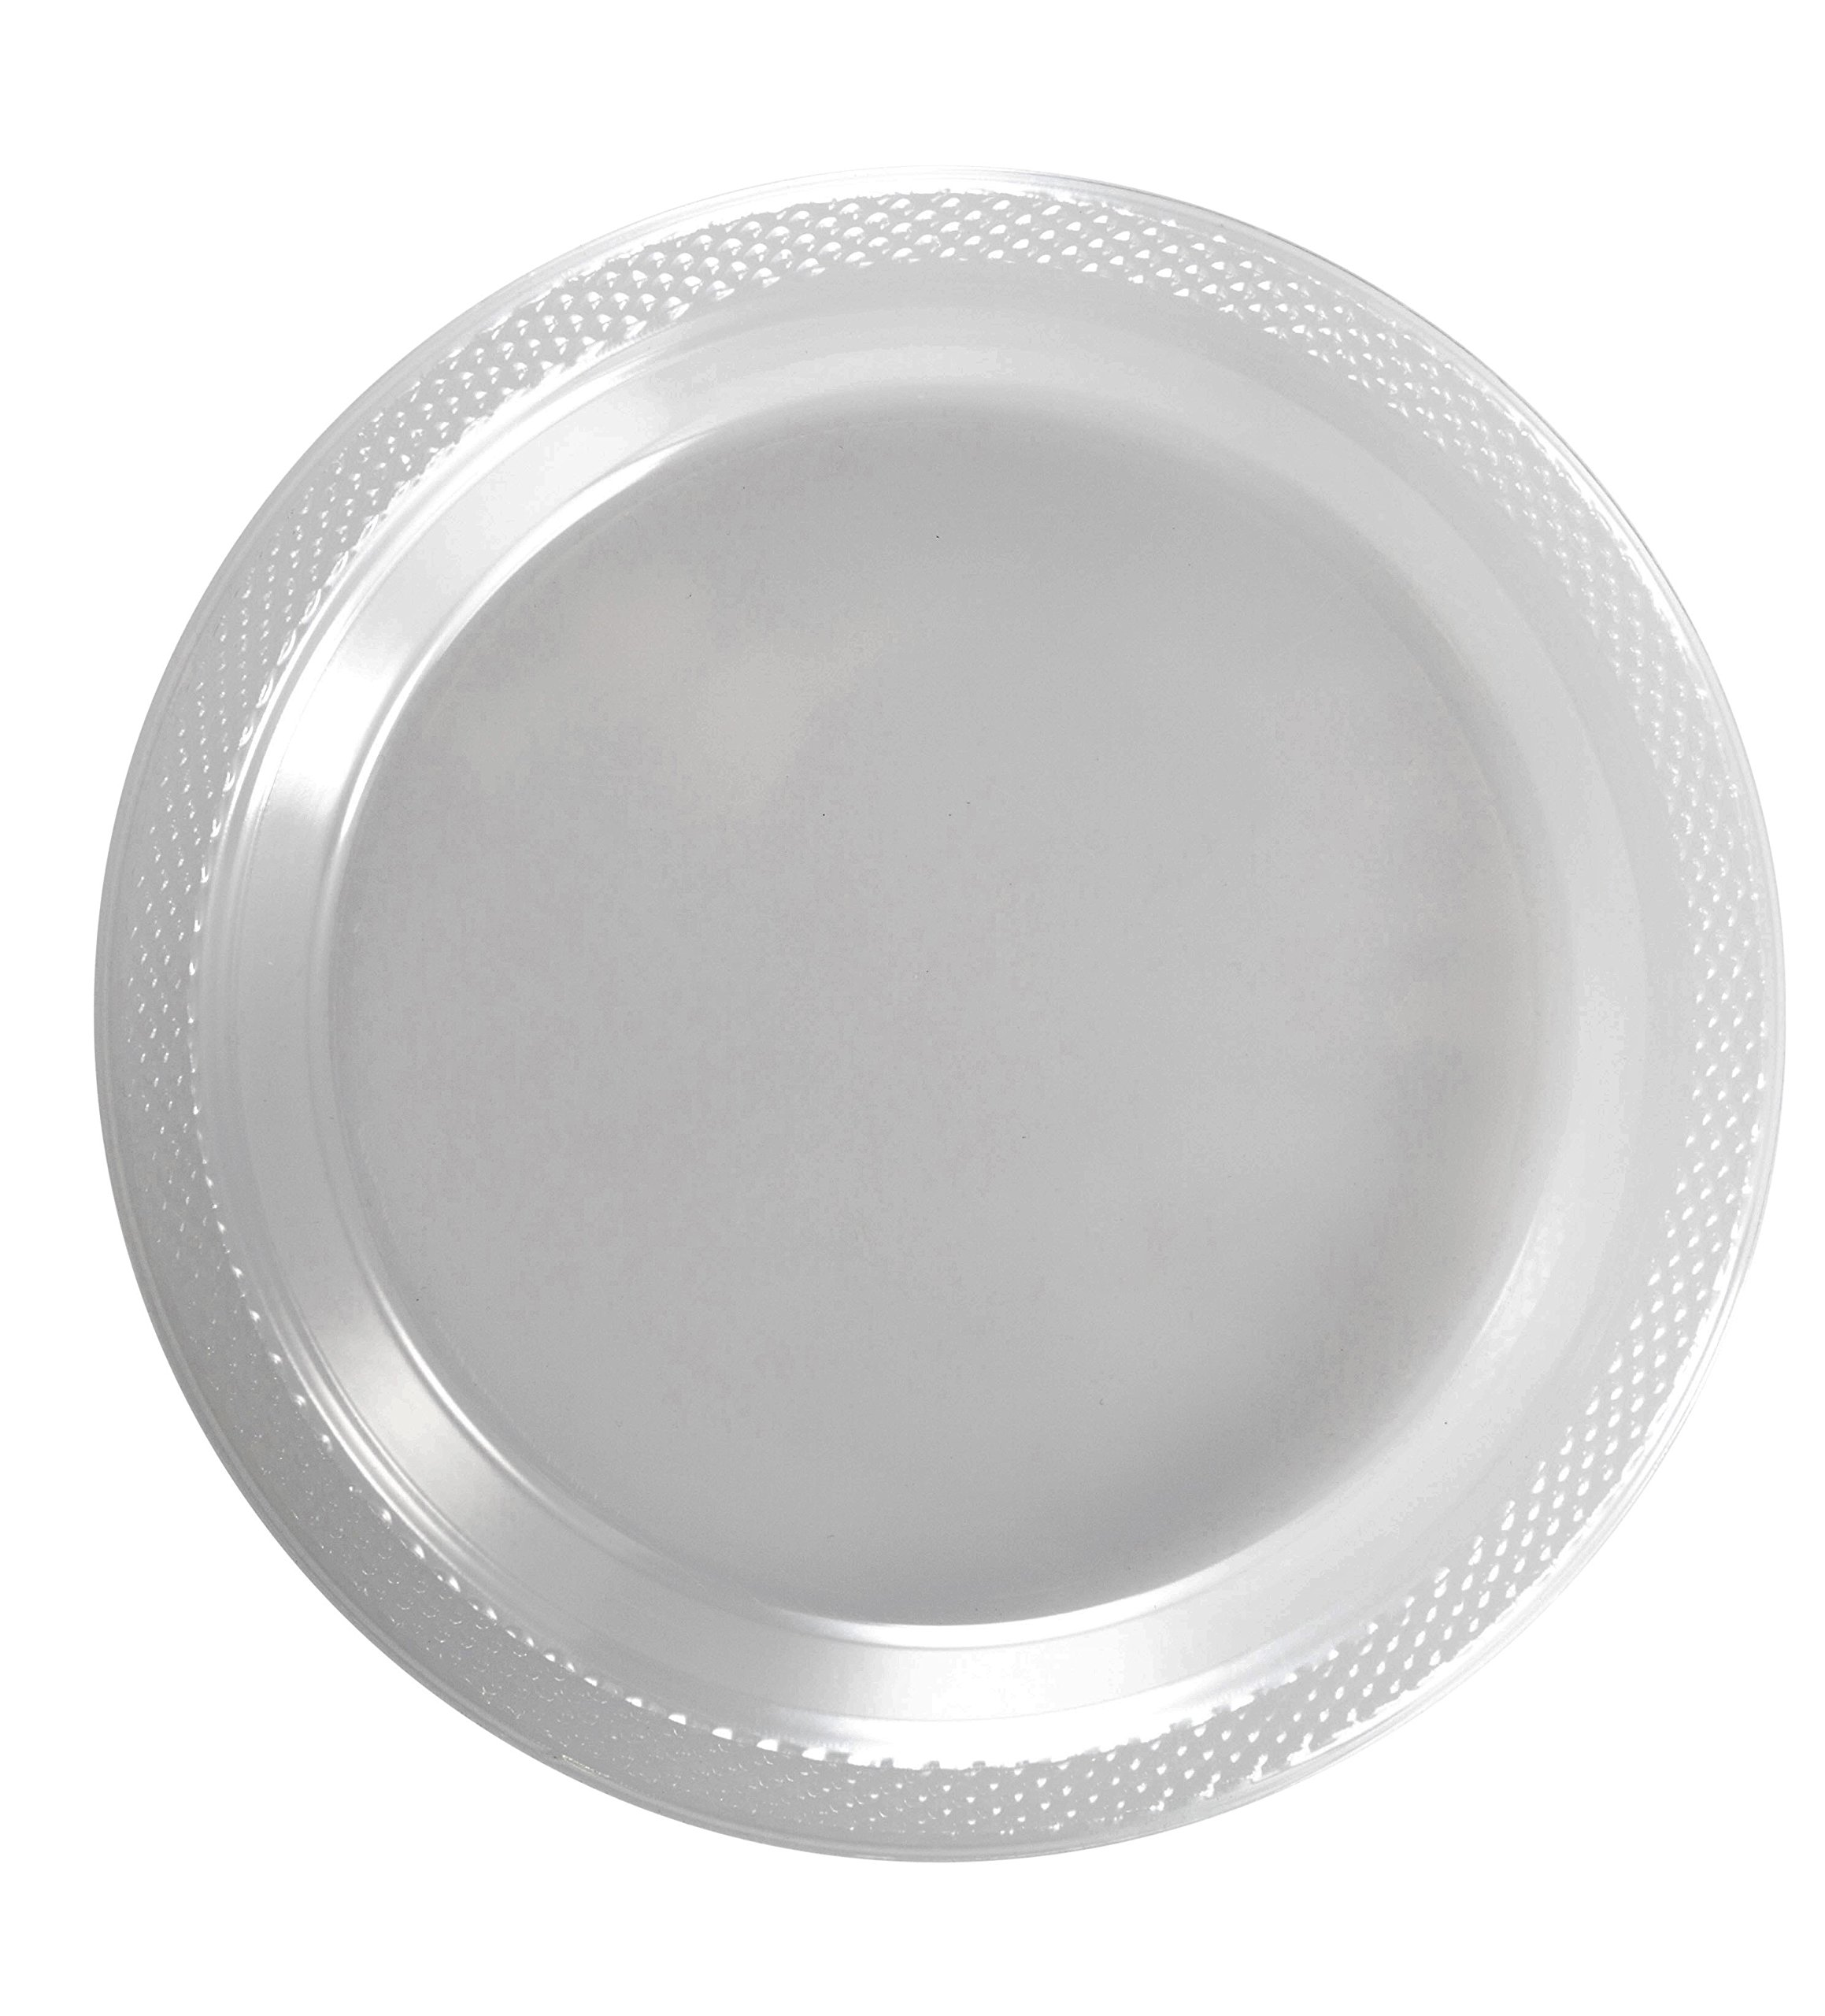 Exquisite 9 Inch. Clear plastic plates - Solid Color Disposable Plates - 100 Count by Exquisite